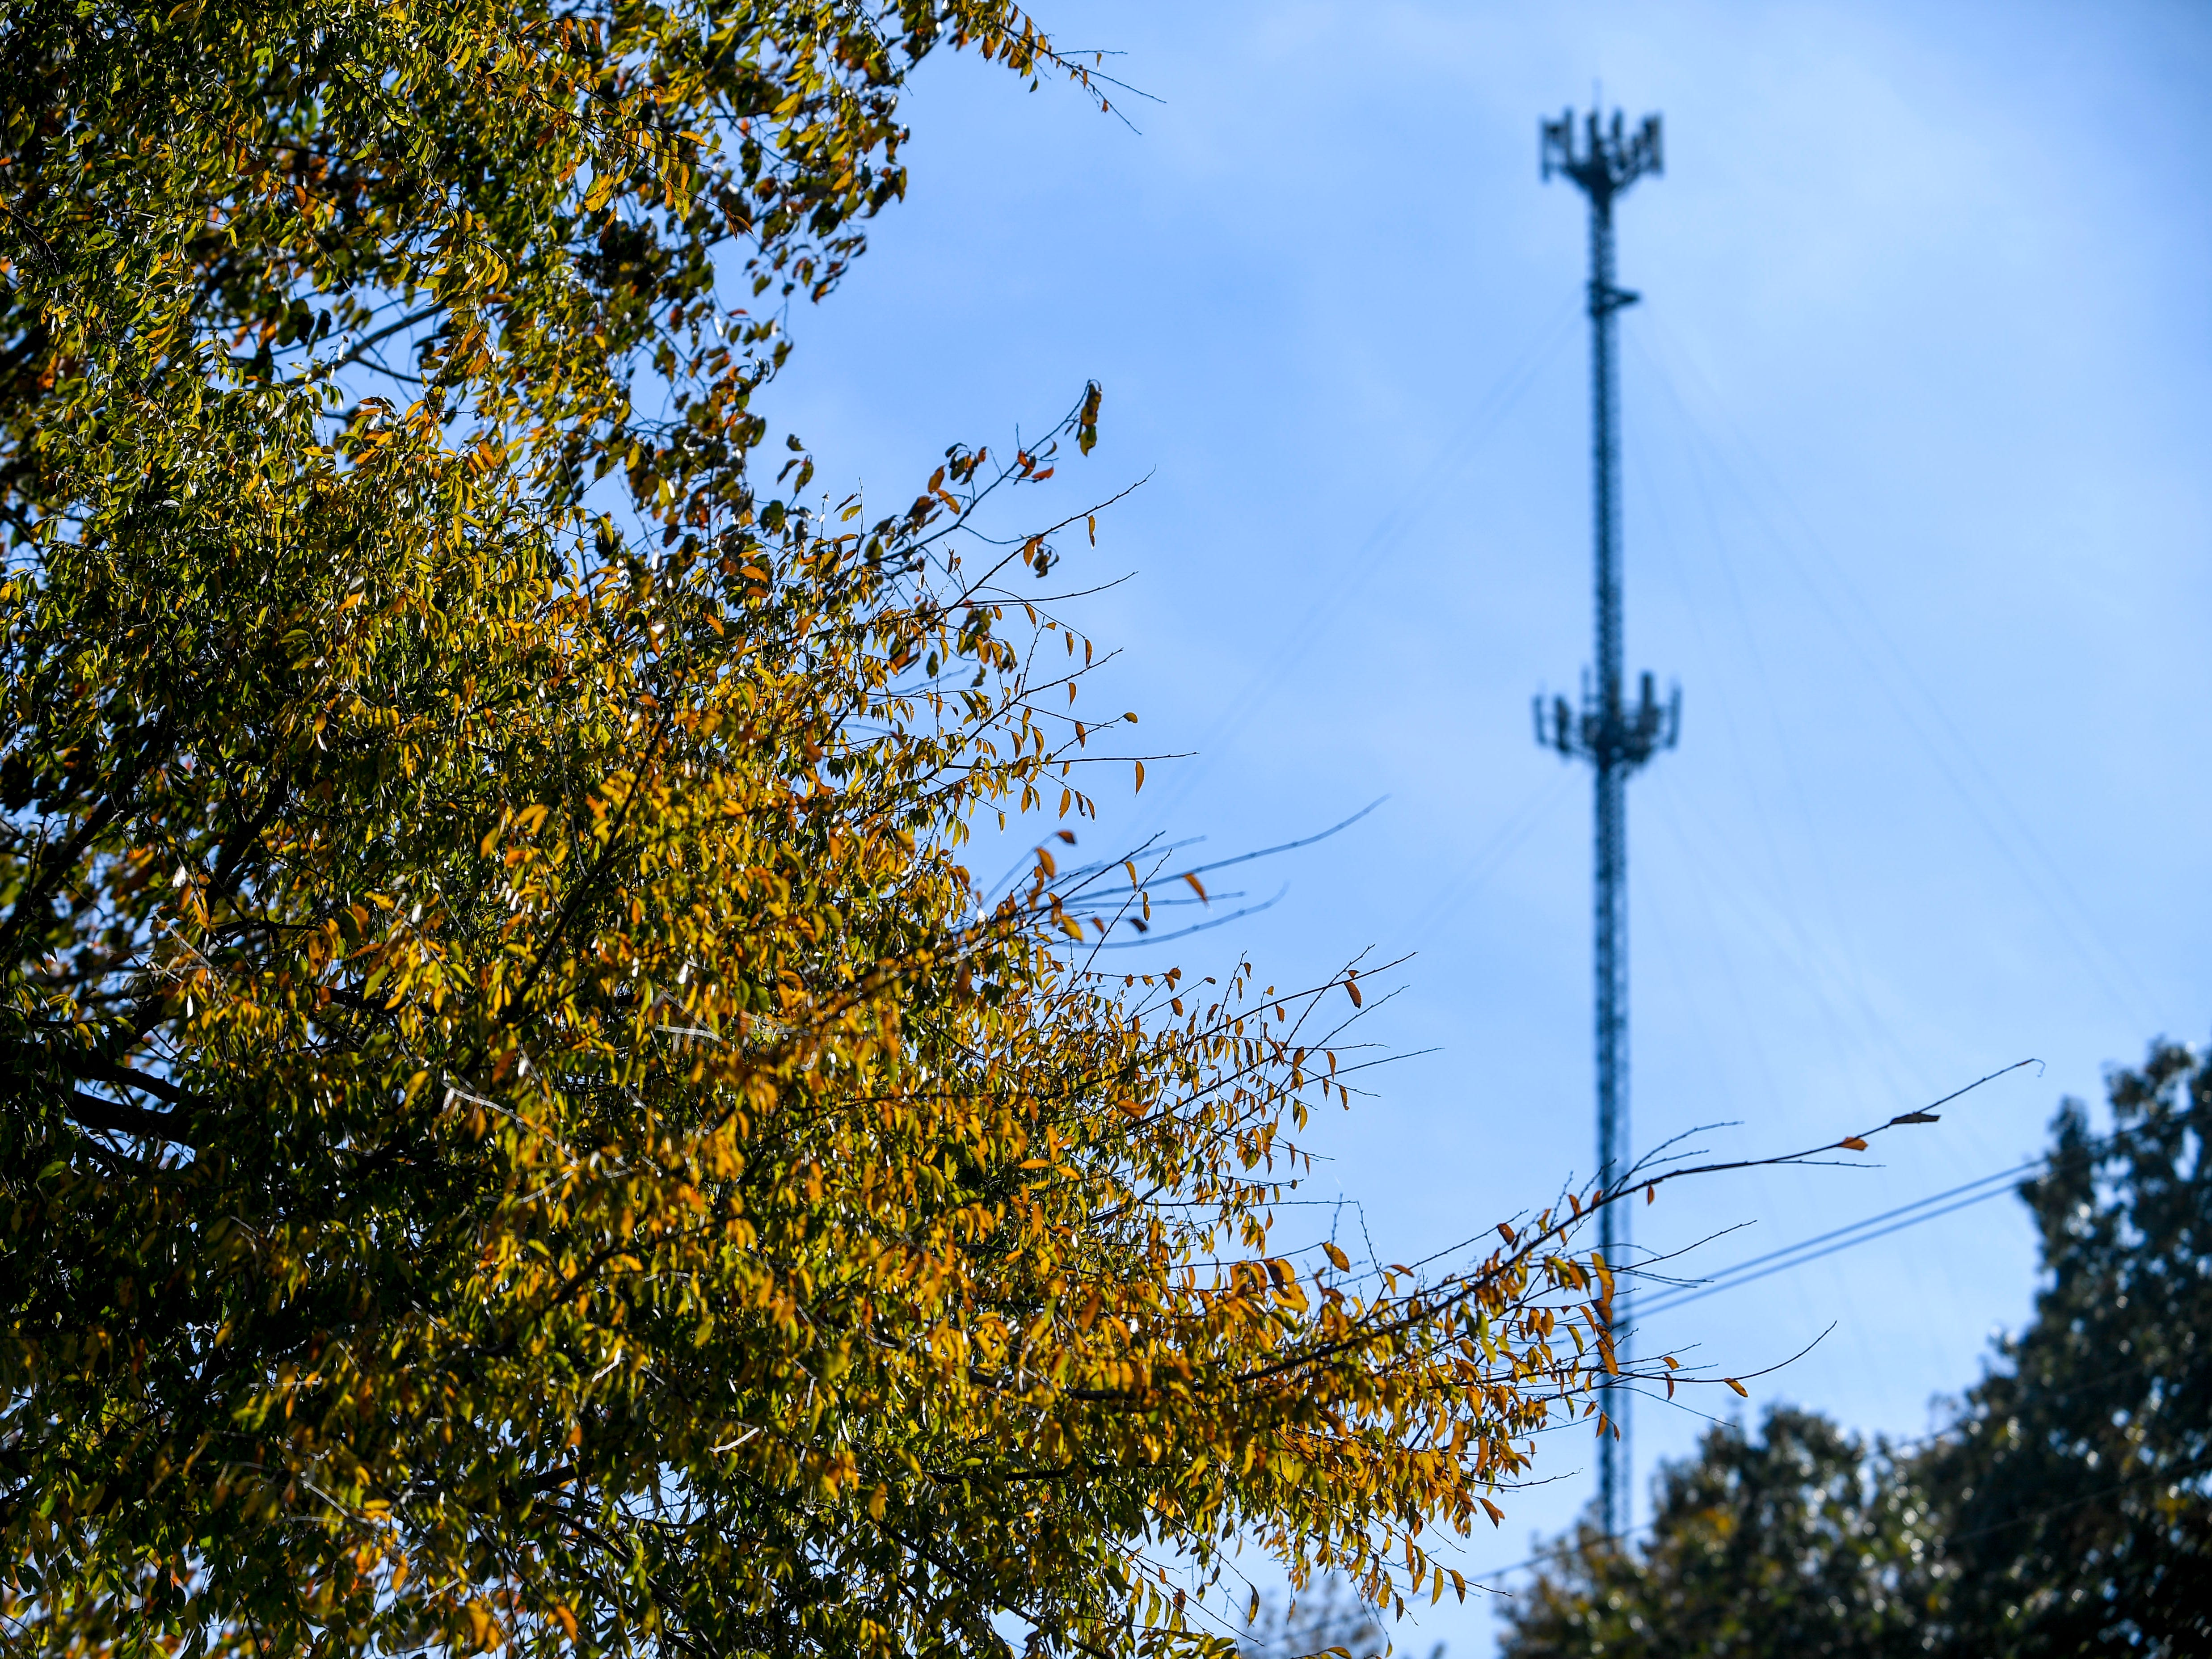 Leaves change color on trees lining the path to an AT&T cellular tower during a ceremonial opening for the expansion of wireless broadband coverage through AT&T cell towers at 4567 Brownsville Hwy in Denmark, Tenn., on Tuesday, Oct. 30, 2018.